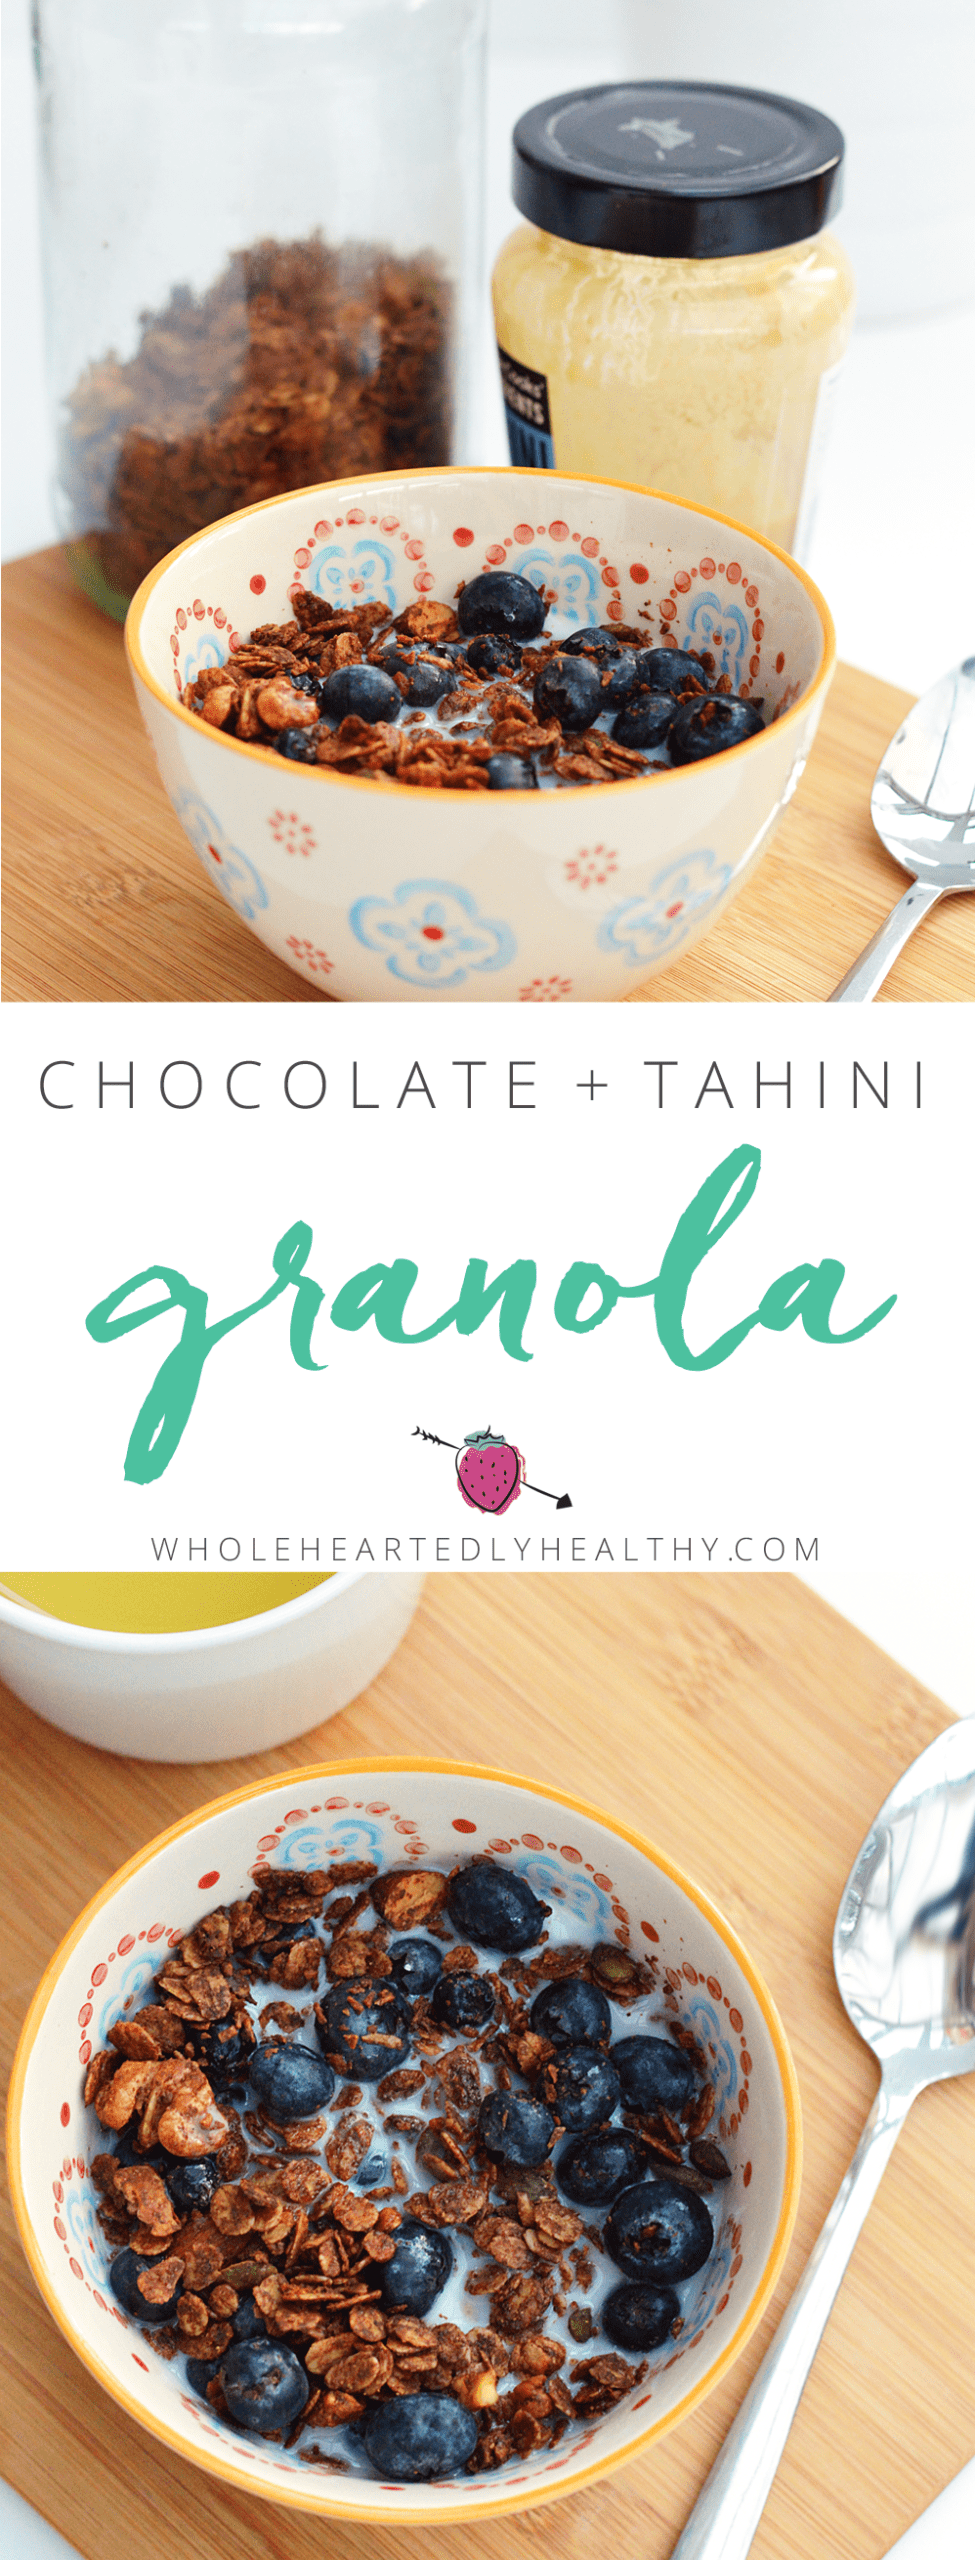 Chocolate and tahini granola